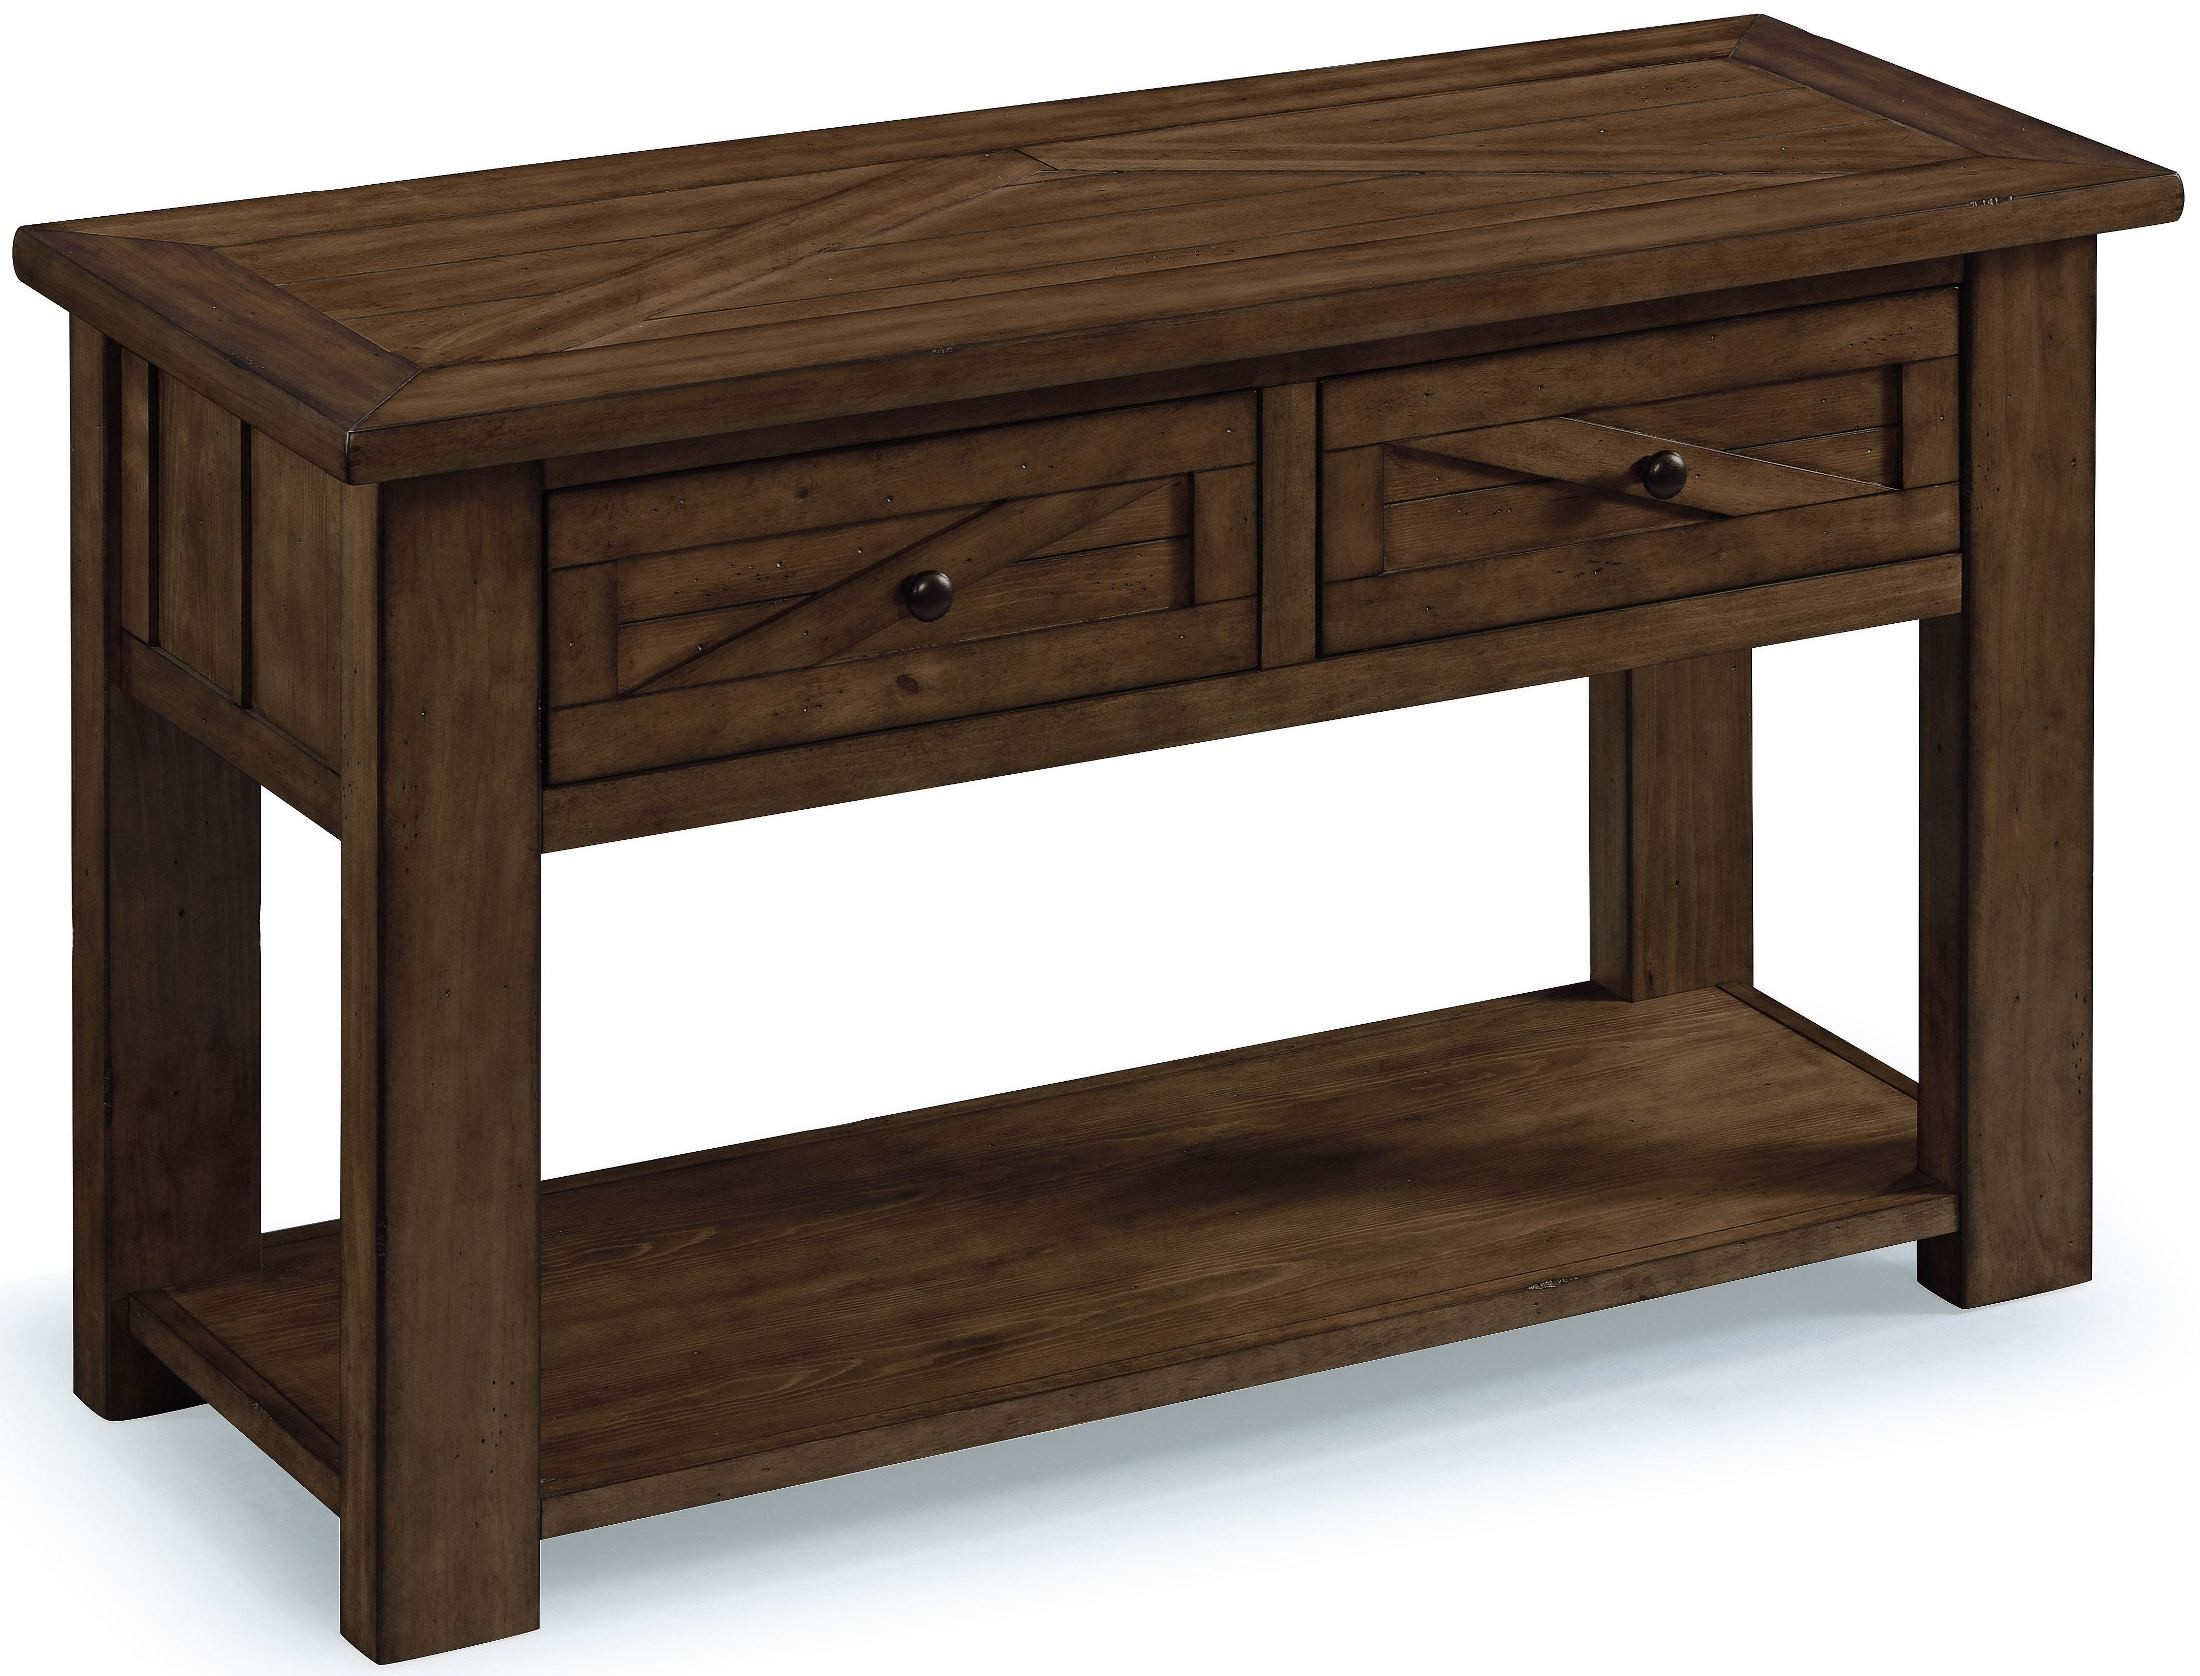 Fraser rustic pine wood rectangular sofa table t